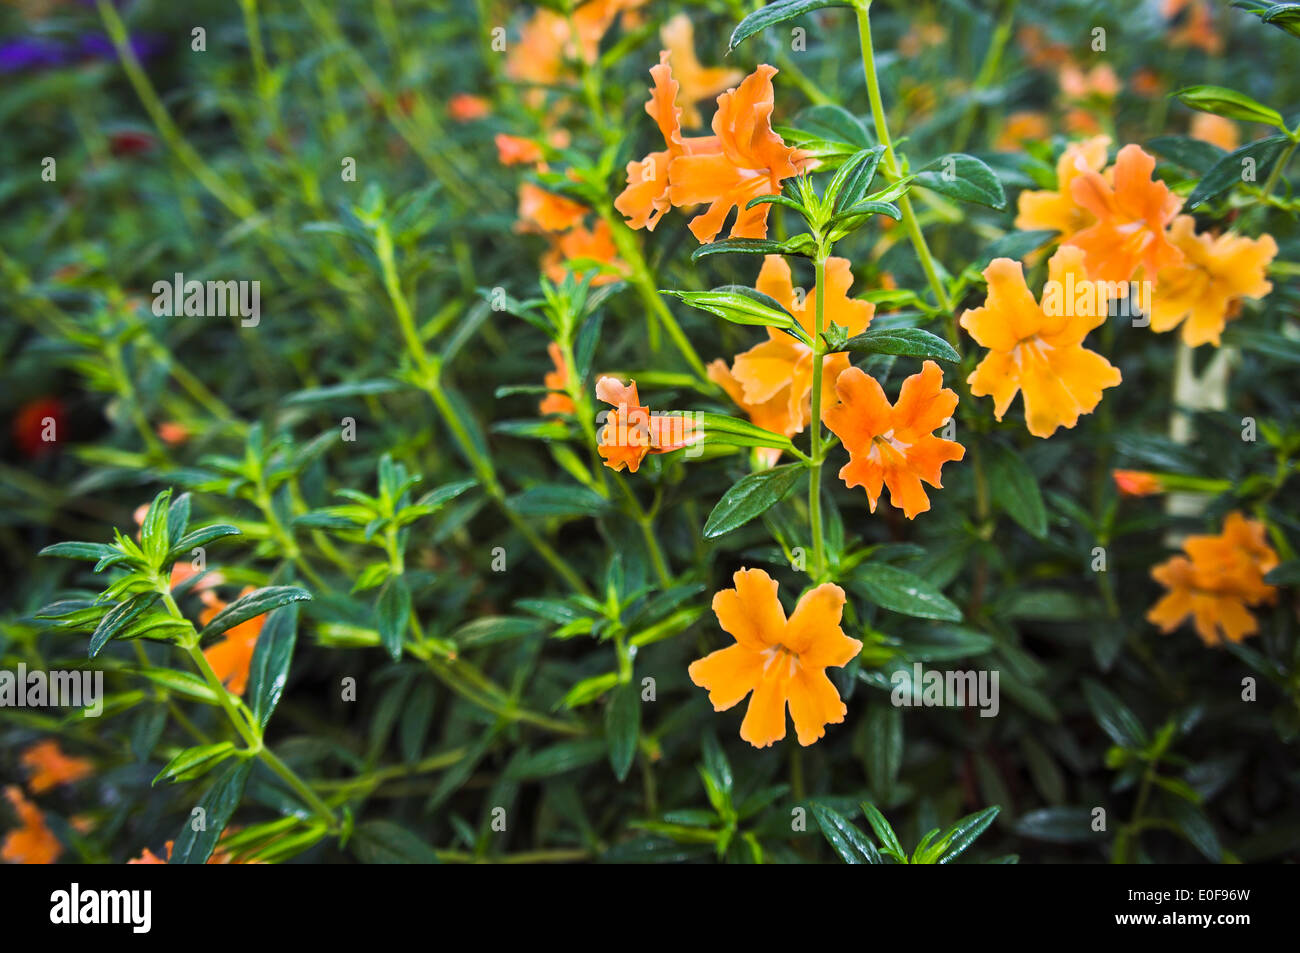 sticky, orange bush monkeyflower, mimulus aurantiacus, gardening, Beautiful flower